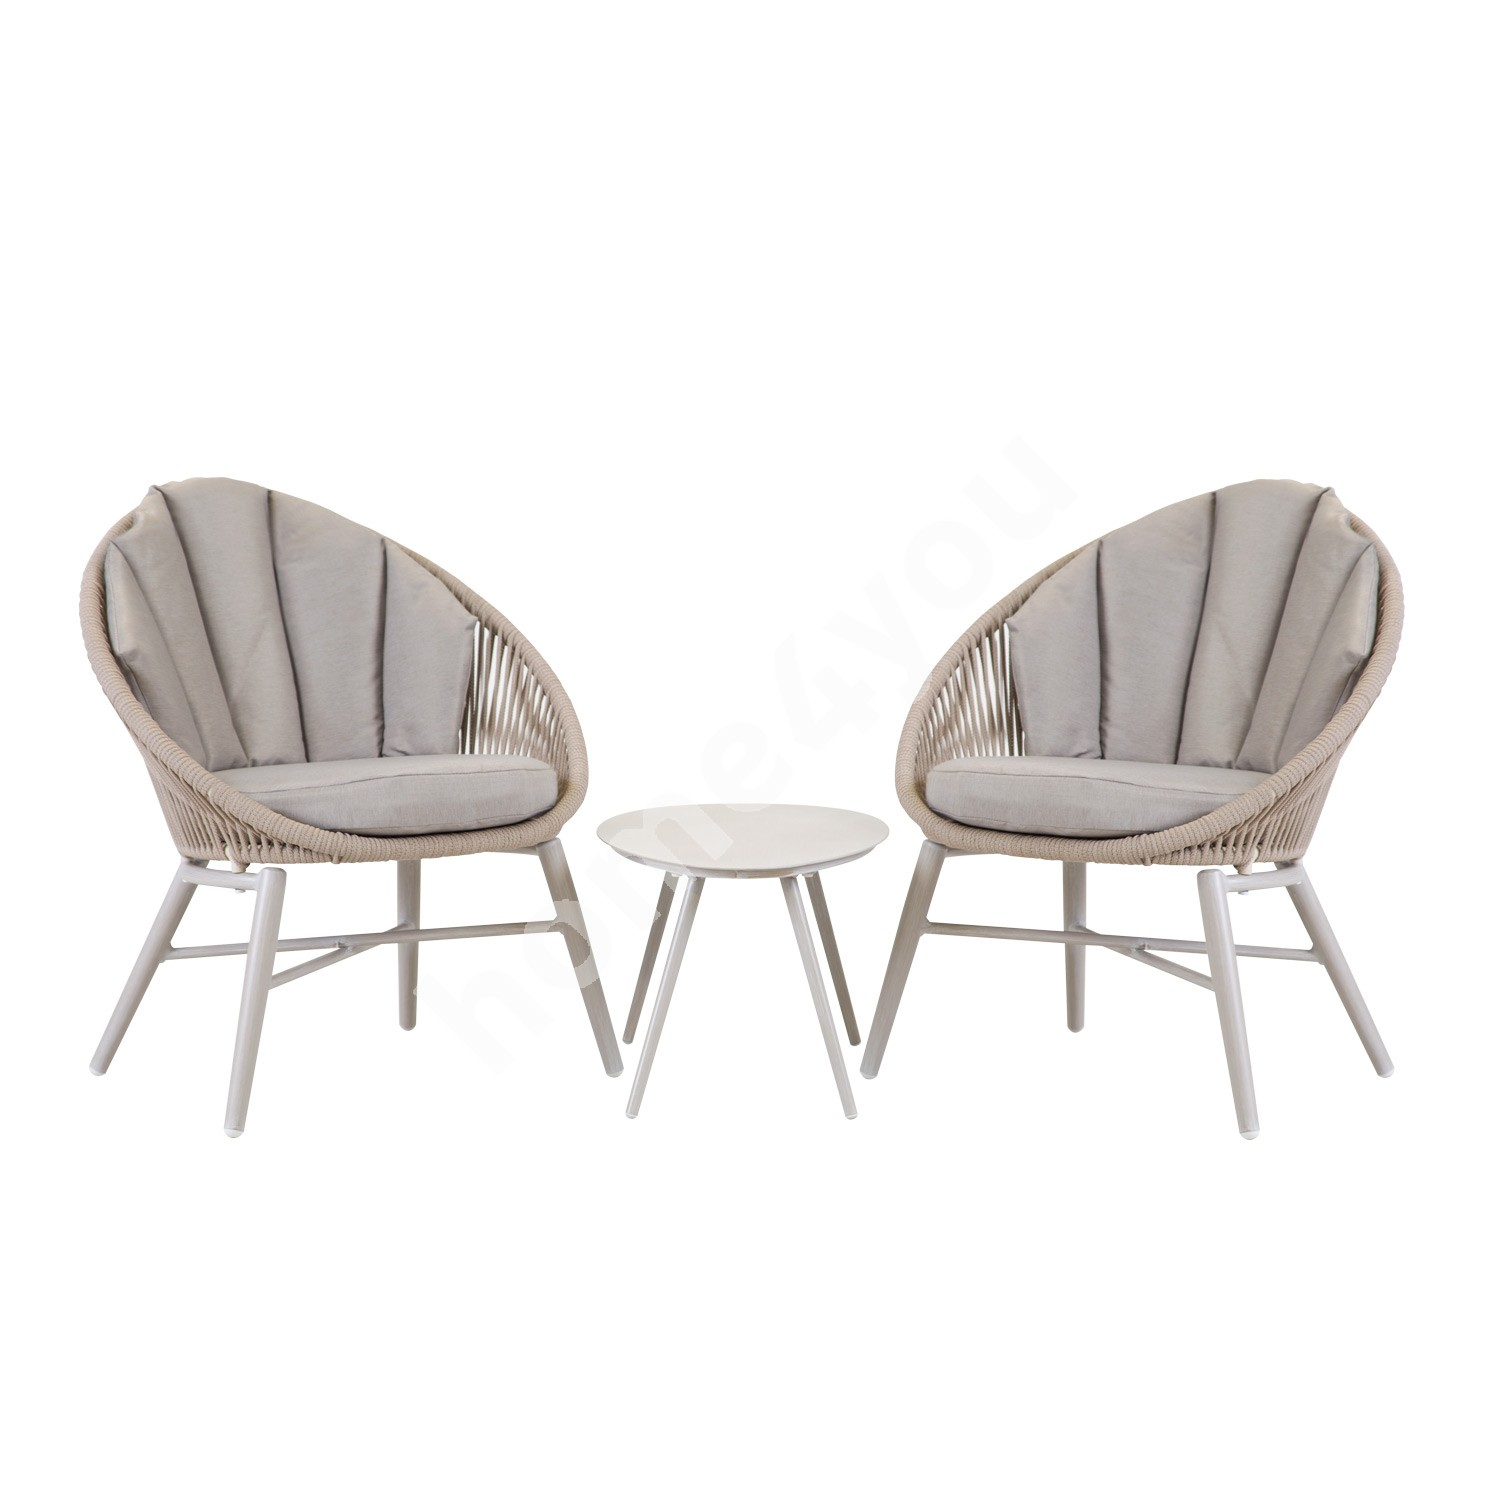 Balcony set SHELLY table and 2 chairs with cushions, aluminum frame with textiline rop, greyish beige